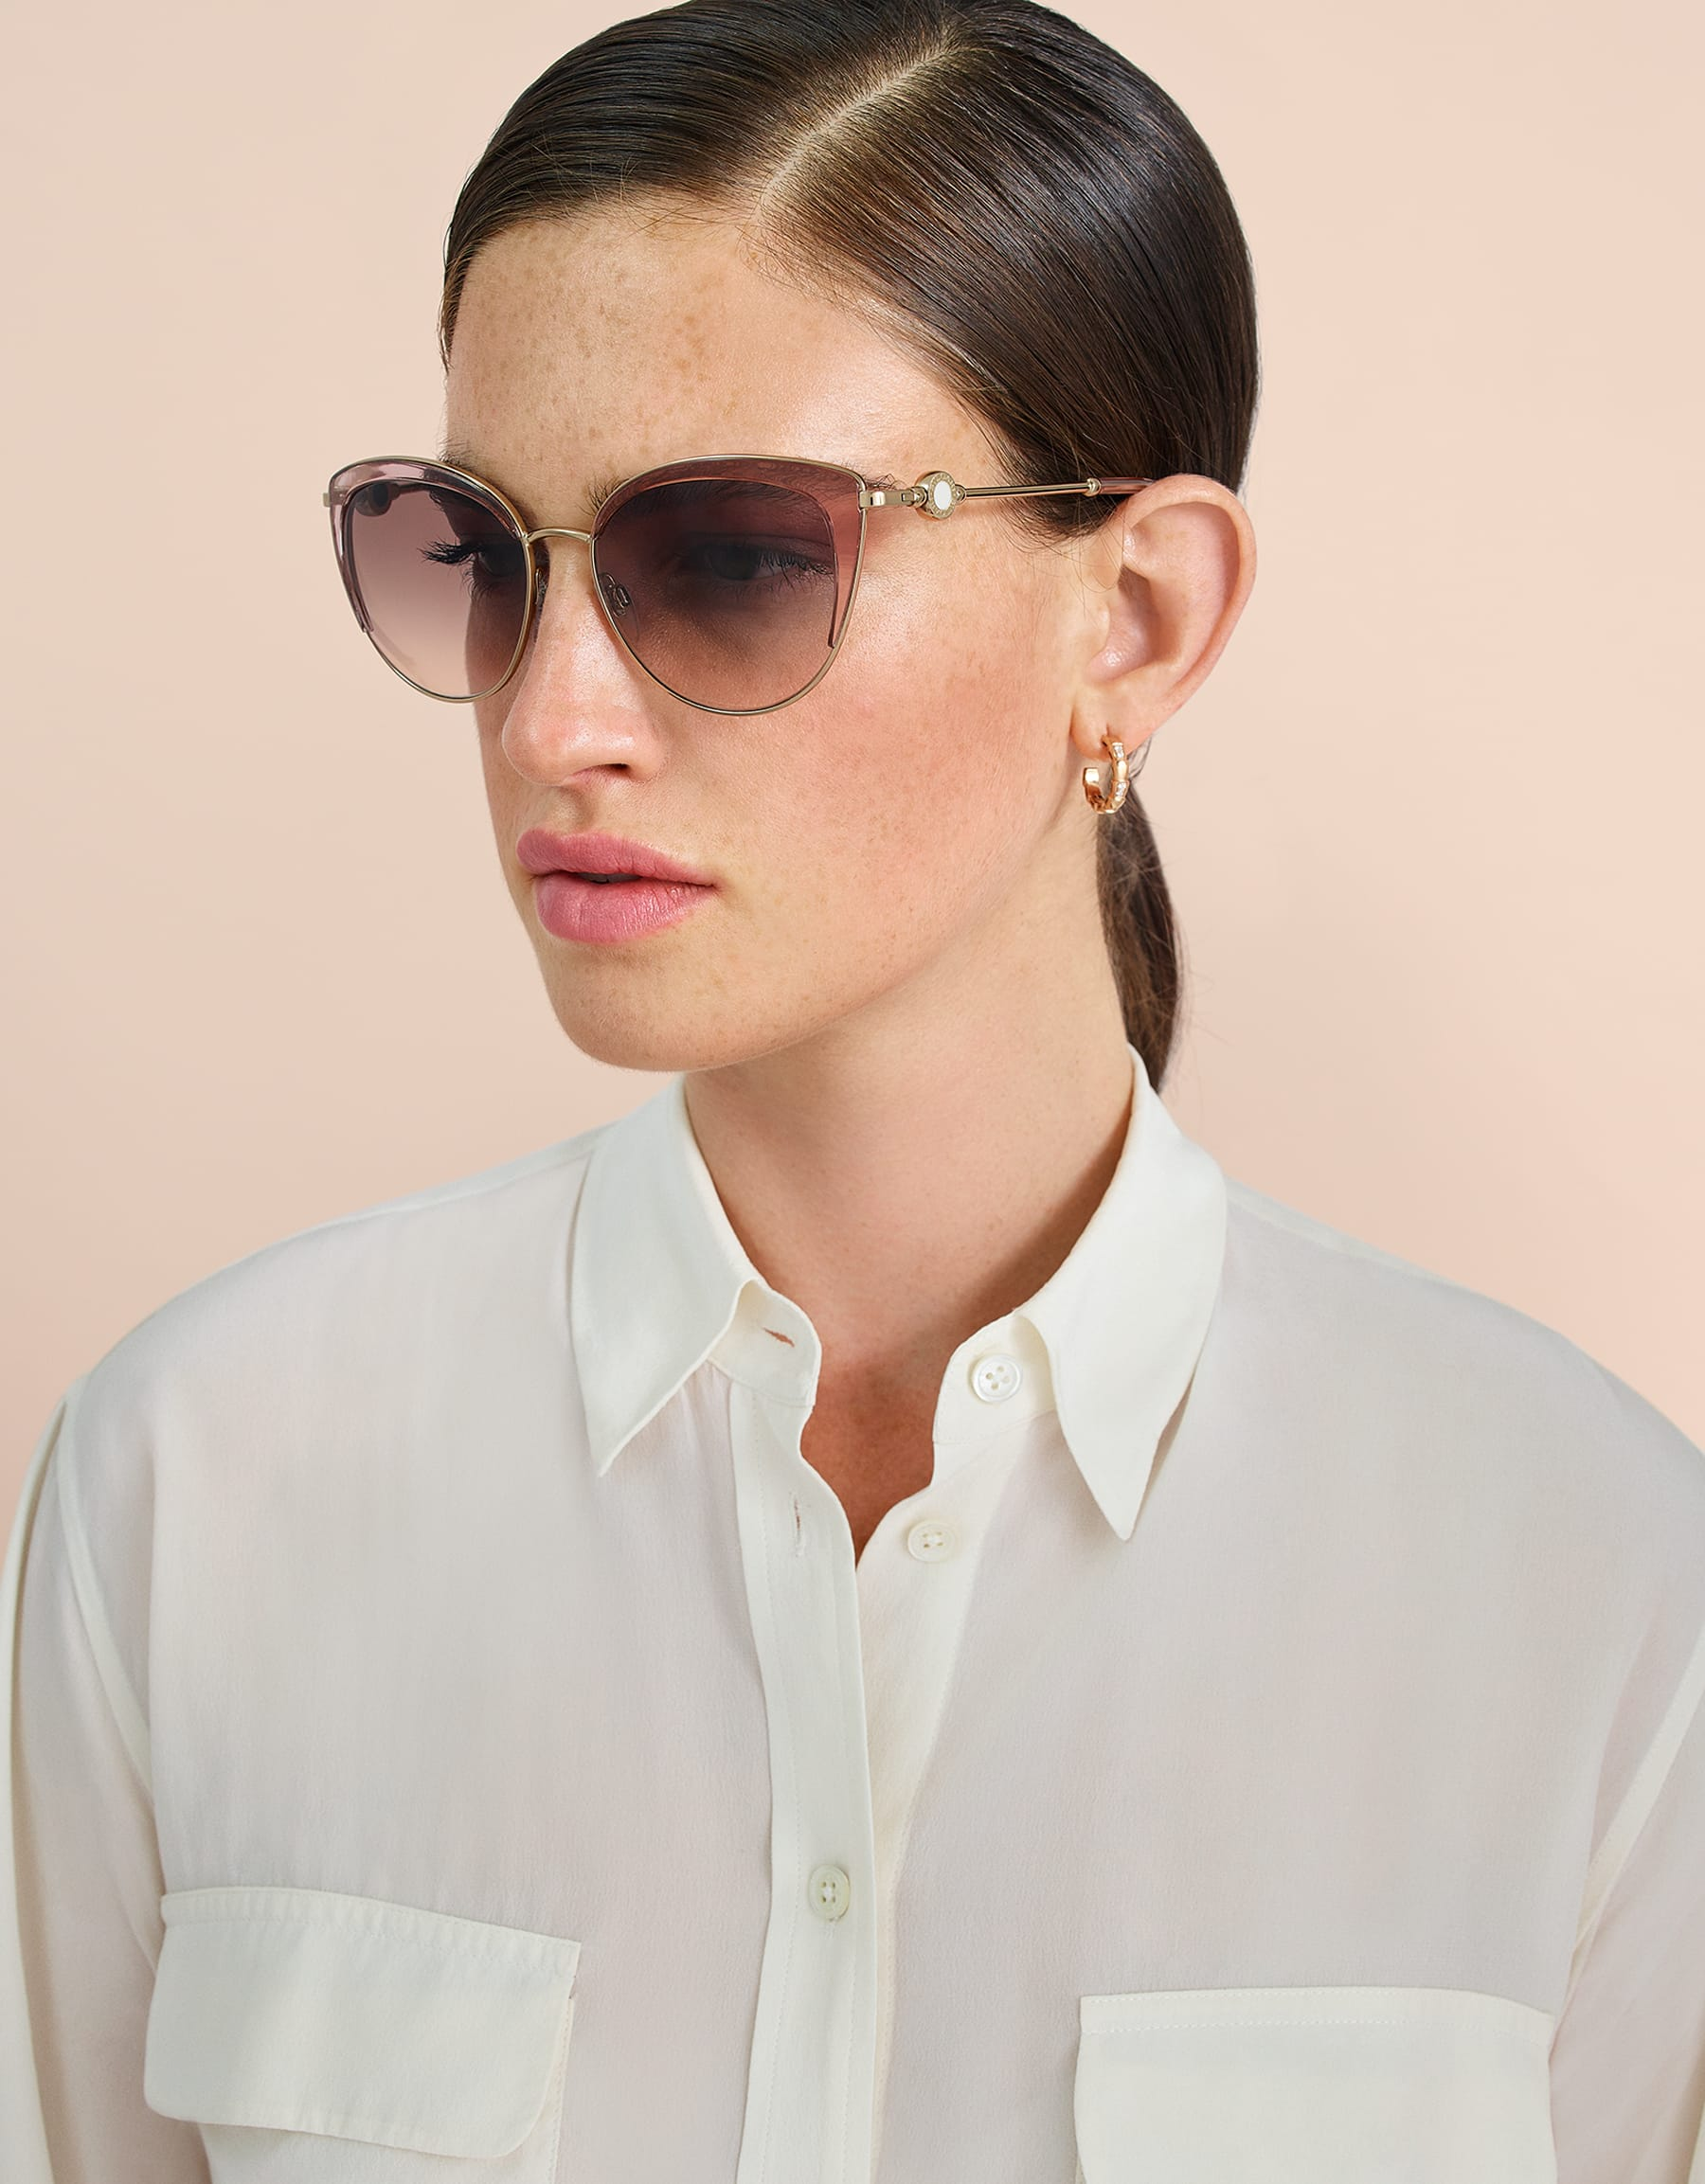 BVLGARI BVLGARI soft cat-eye metal sunglasses featuring a round décor with double logo. 903915 image 3